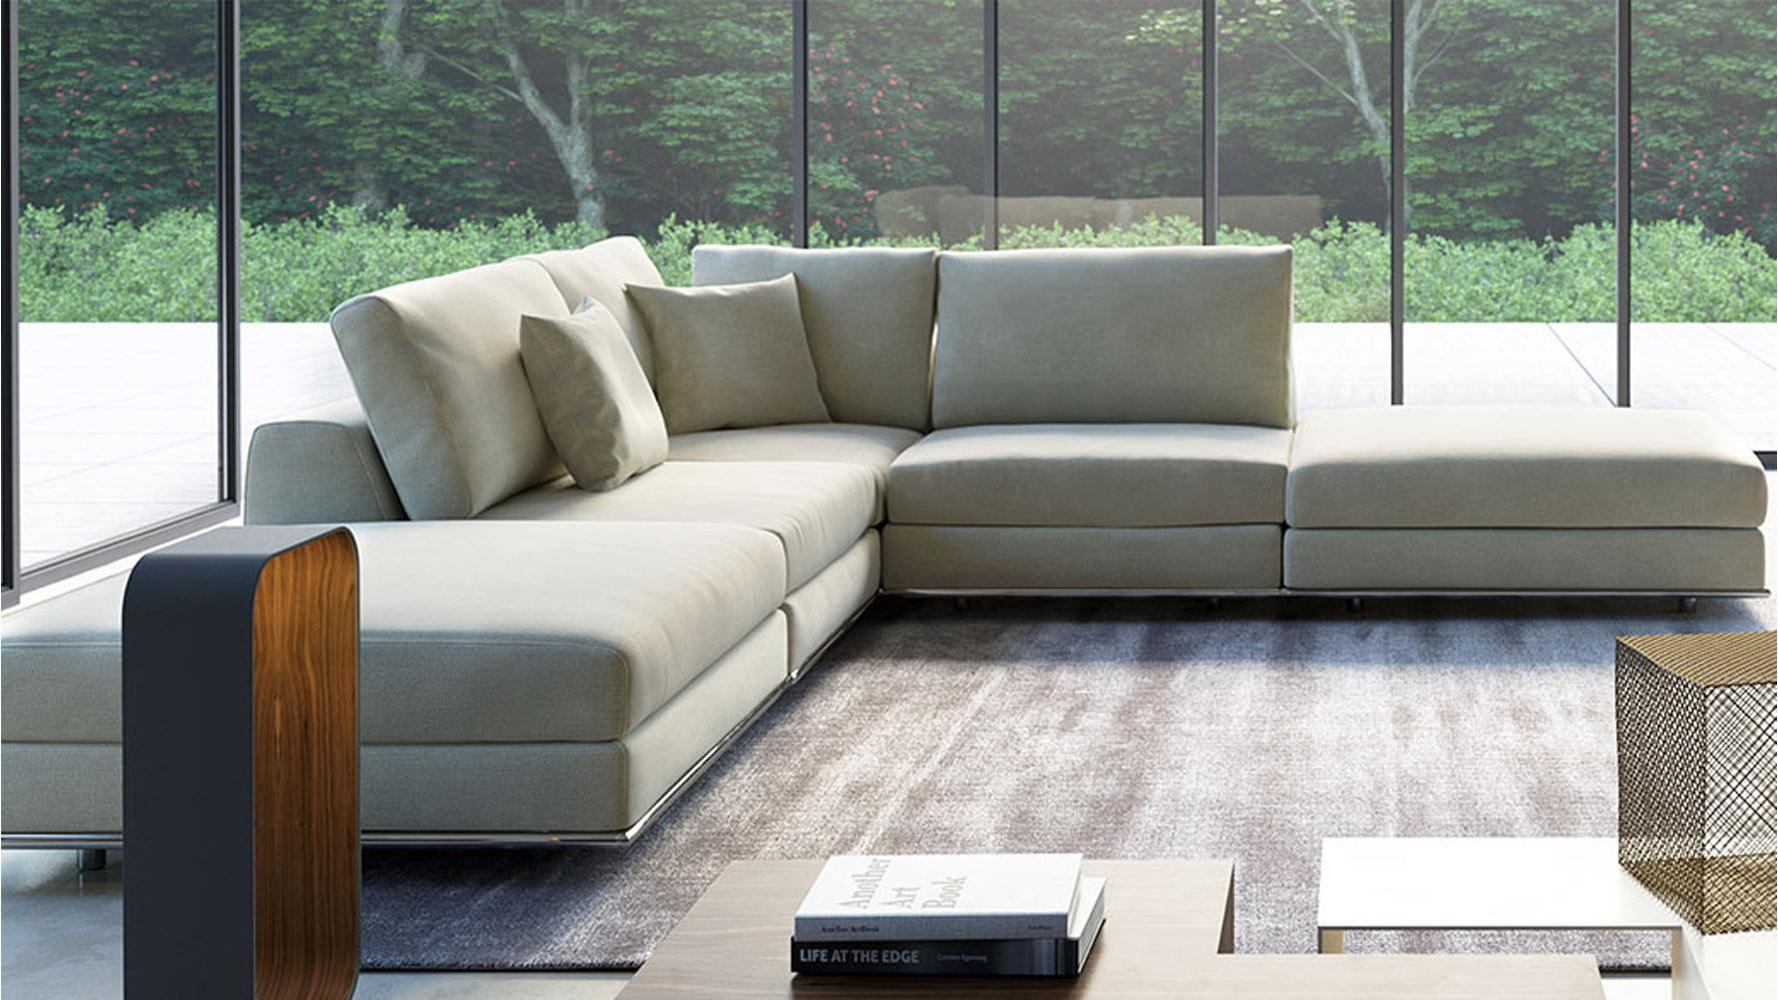 Modern Persis Armless Corner Sectional Sofa – Moonbeam | Zuri In Armless Sectional Sofas (Image 7 of 15)